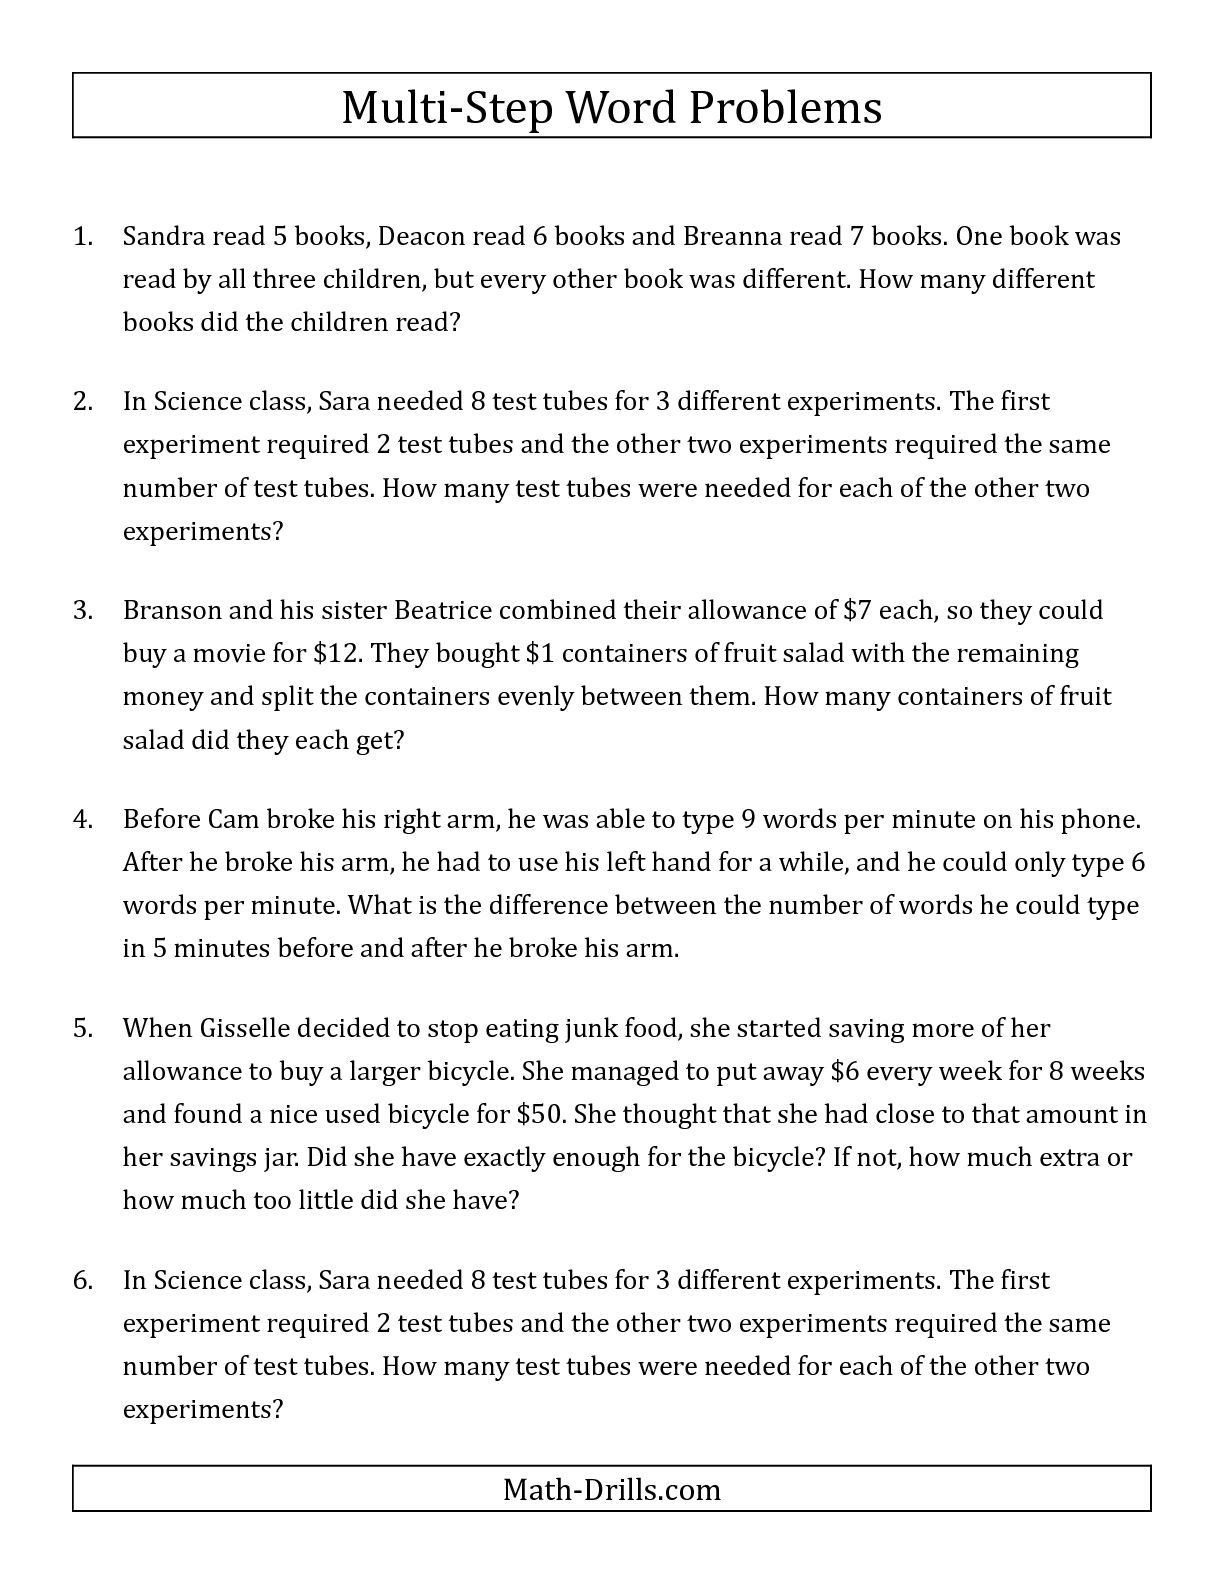 Estimating Word Problems 3rd Grade the Easy Multi Step Word Problems Math Worksheet From the